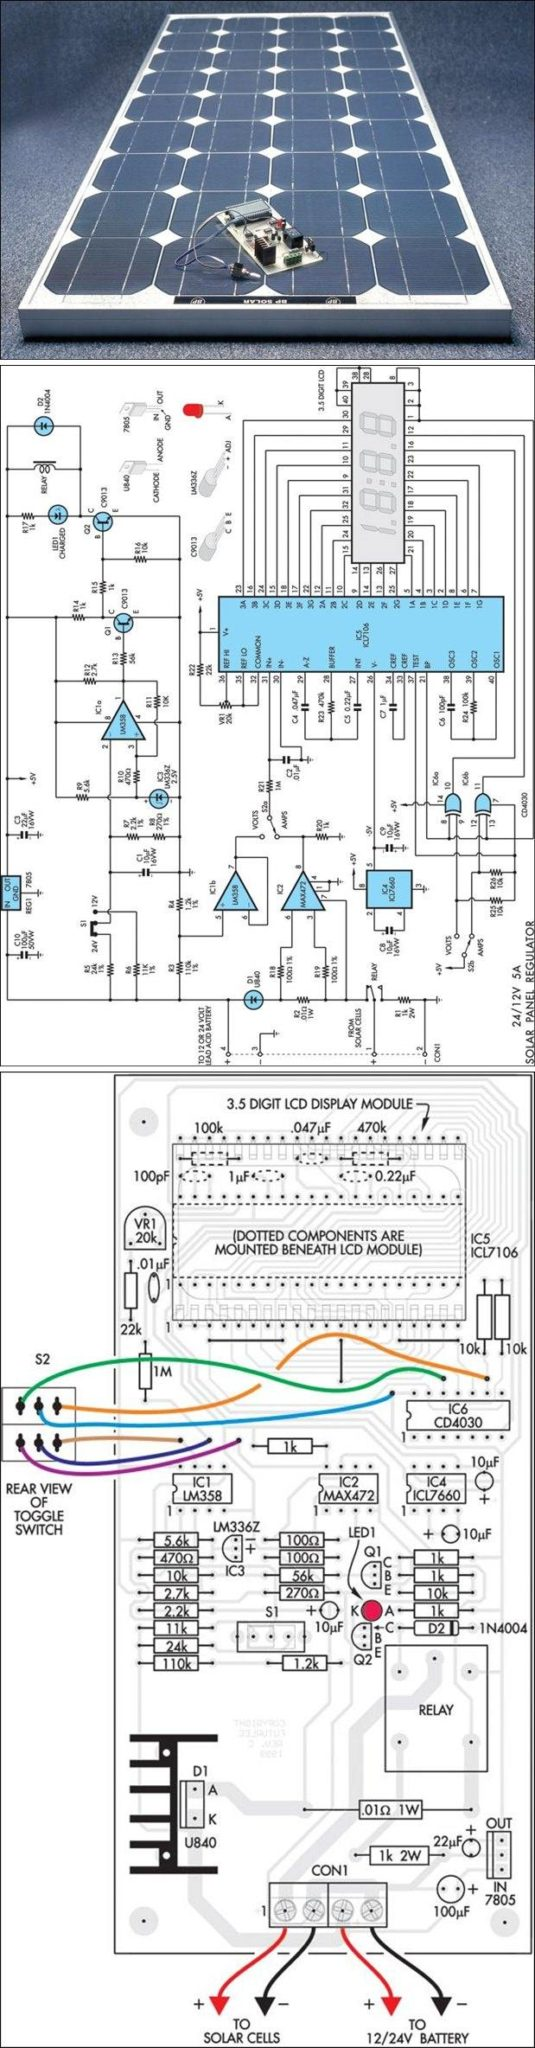 12V 24V SOLAR PANEL REGULATOR WITH LCD DISPLAY SCHEMATIC CIRCUIT DIAGRAM